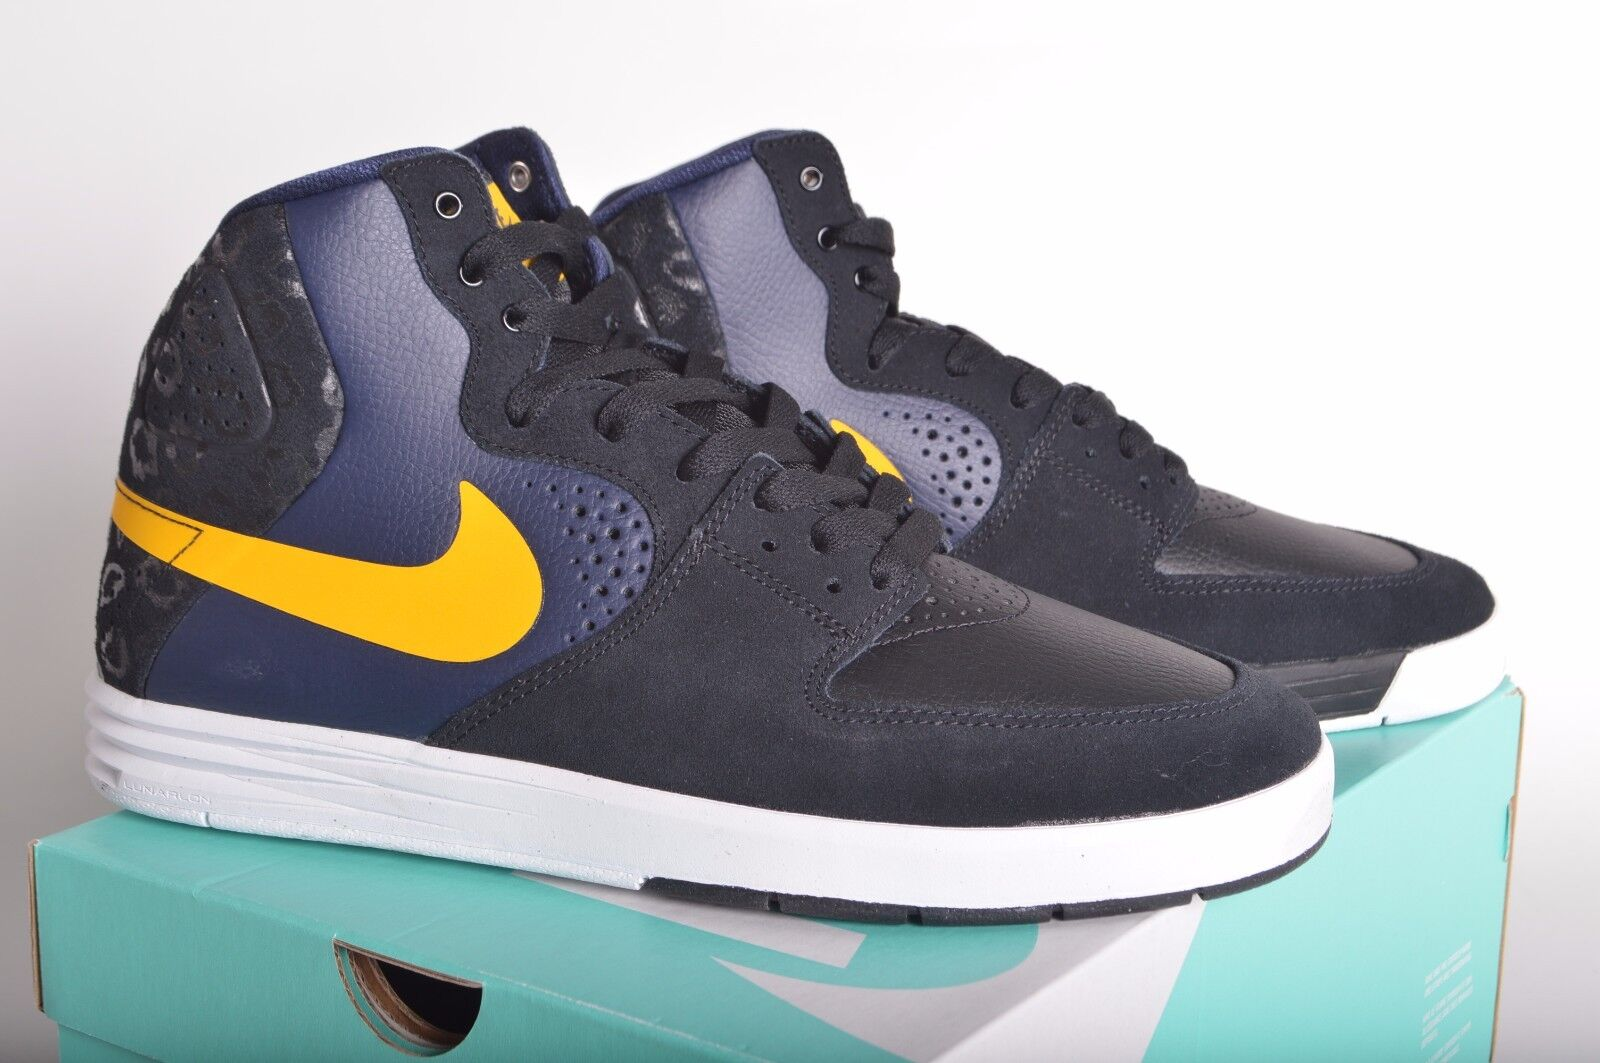 Brand discount NIB MEN'S NIKE PAUL RODRIGUEZ 7 HIGH 10 Blac /Varsity Maize-Obsidian 616355 074